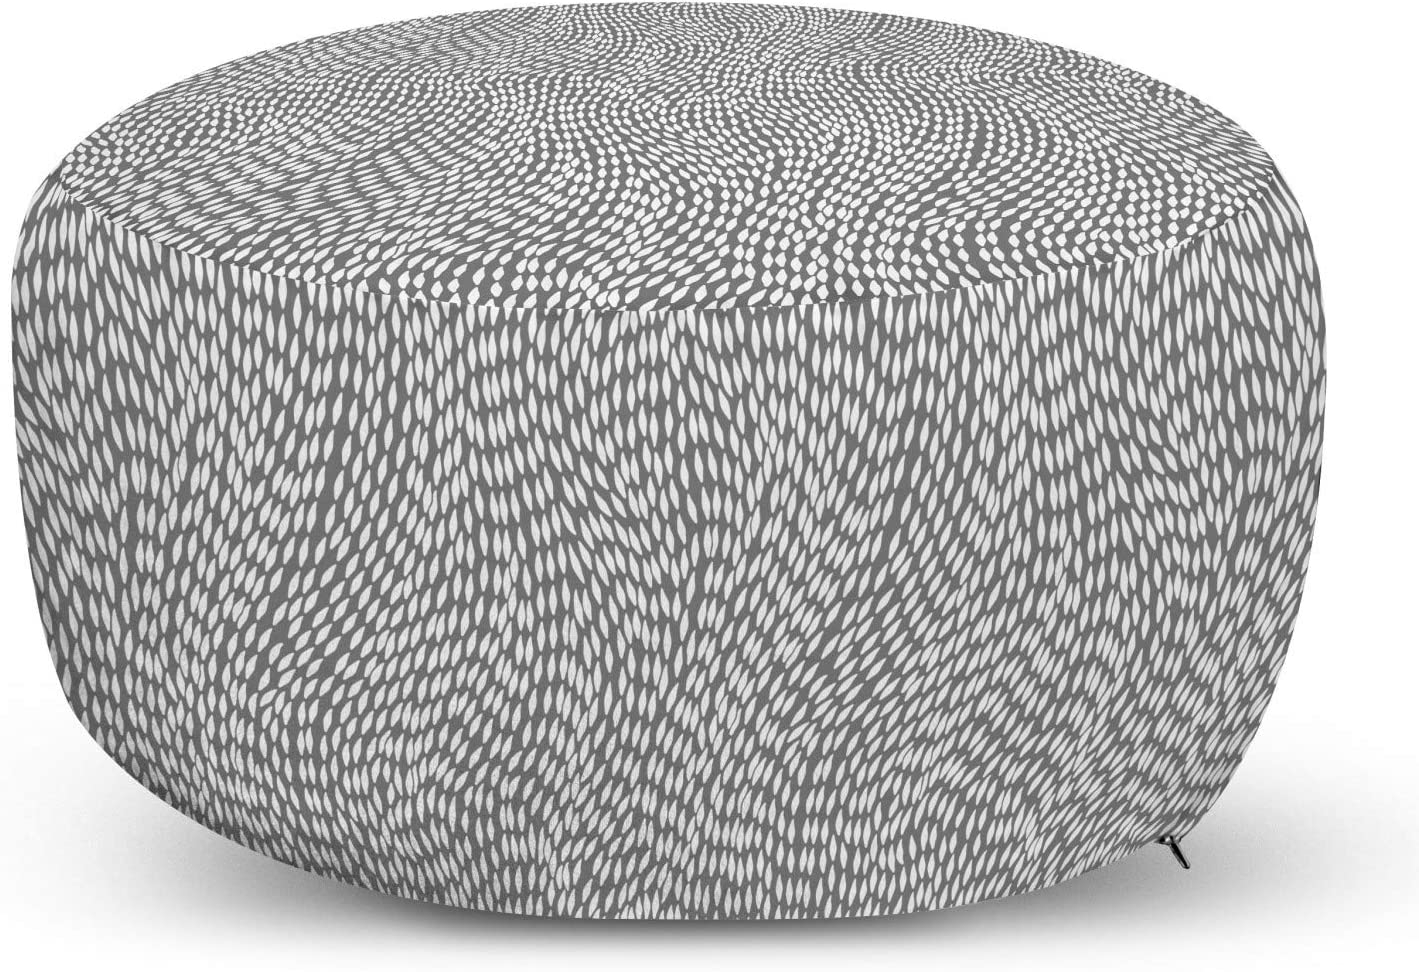 Award Ambesonne Grey and In a popularity White Pouf Cover Zipper Hand with Styl Drawn